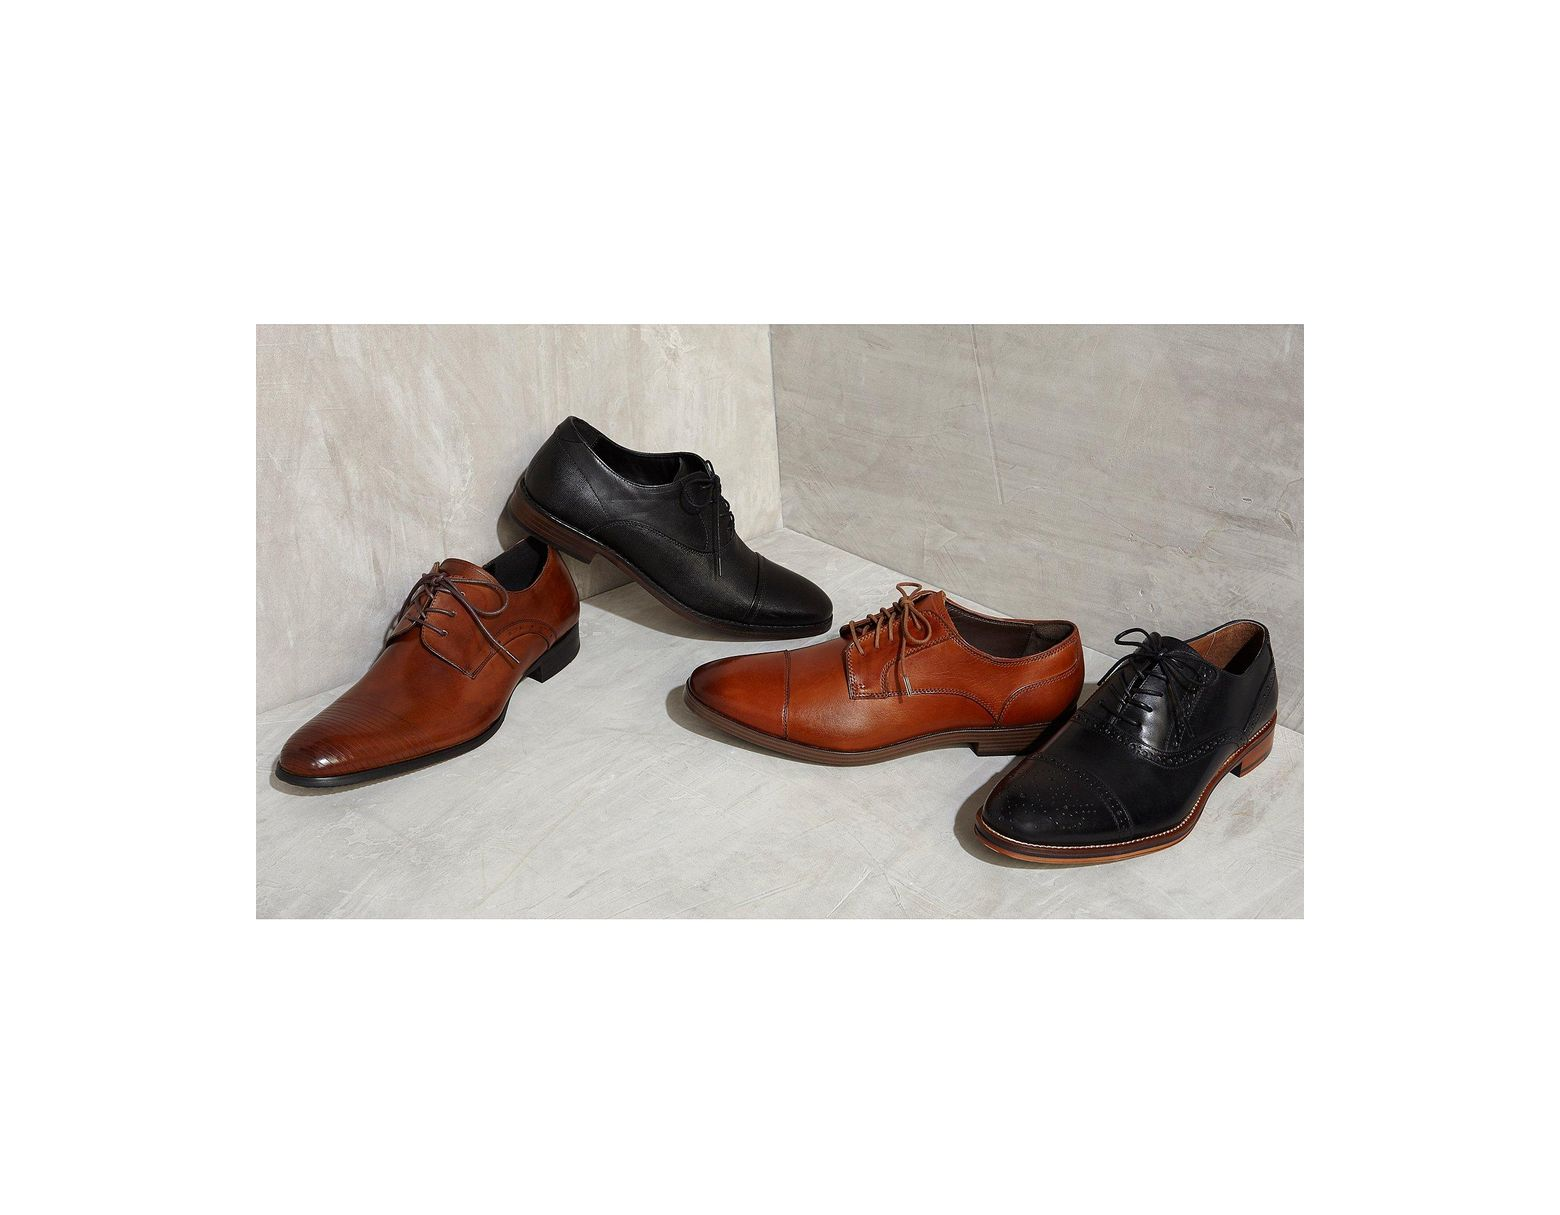 6ea7b623b Kenneth Cole Straight Line Dress Shoes in Black for Men - Lyst